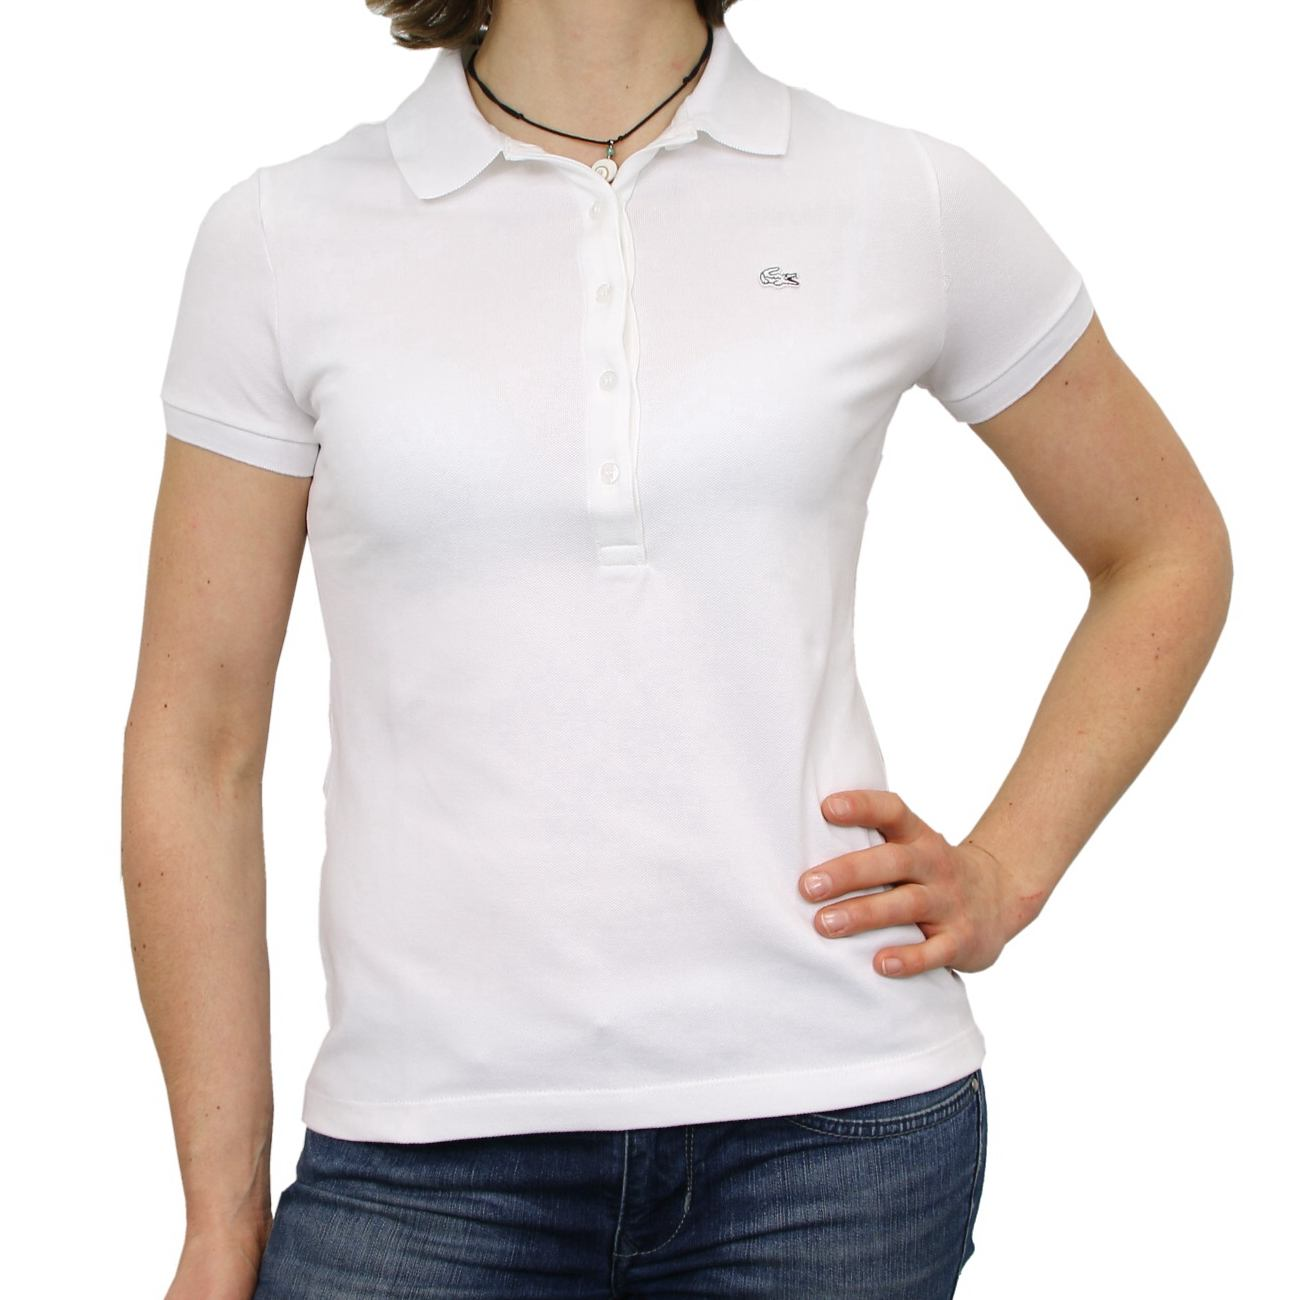 lacoste polo shirt polo t shirt baumwollstretch short sleeve ladies. Black Bedroom Furniture Sets. Home Design Ideas